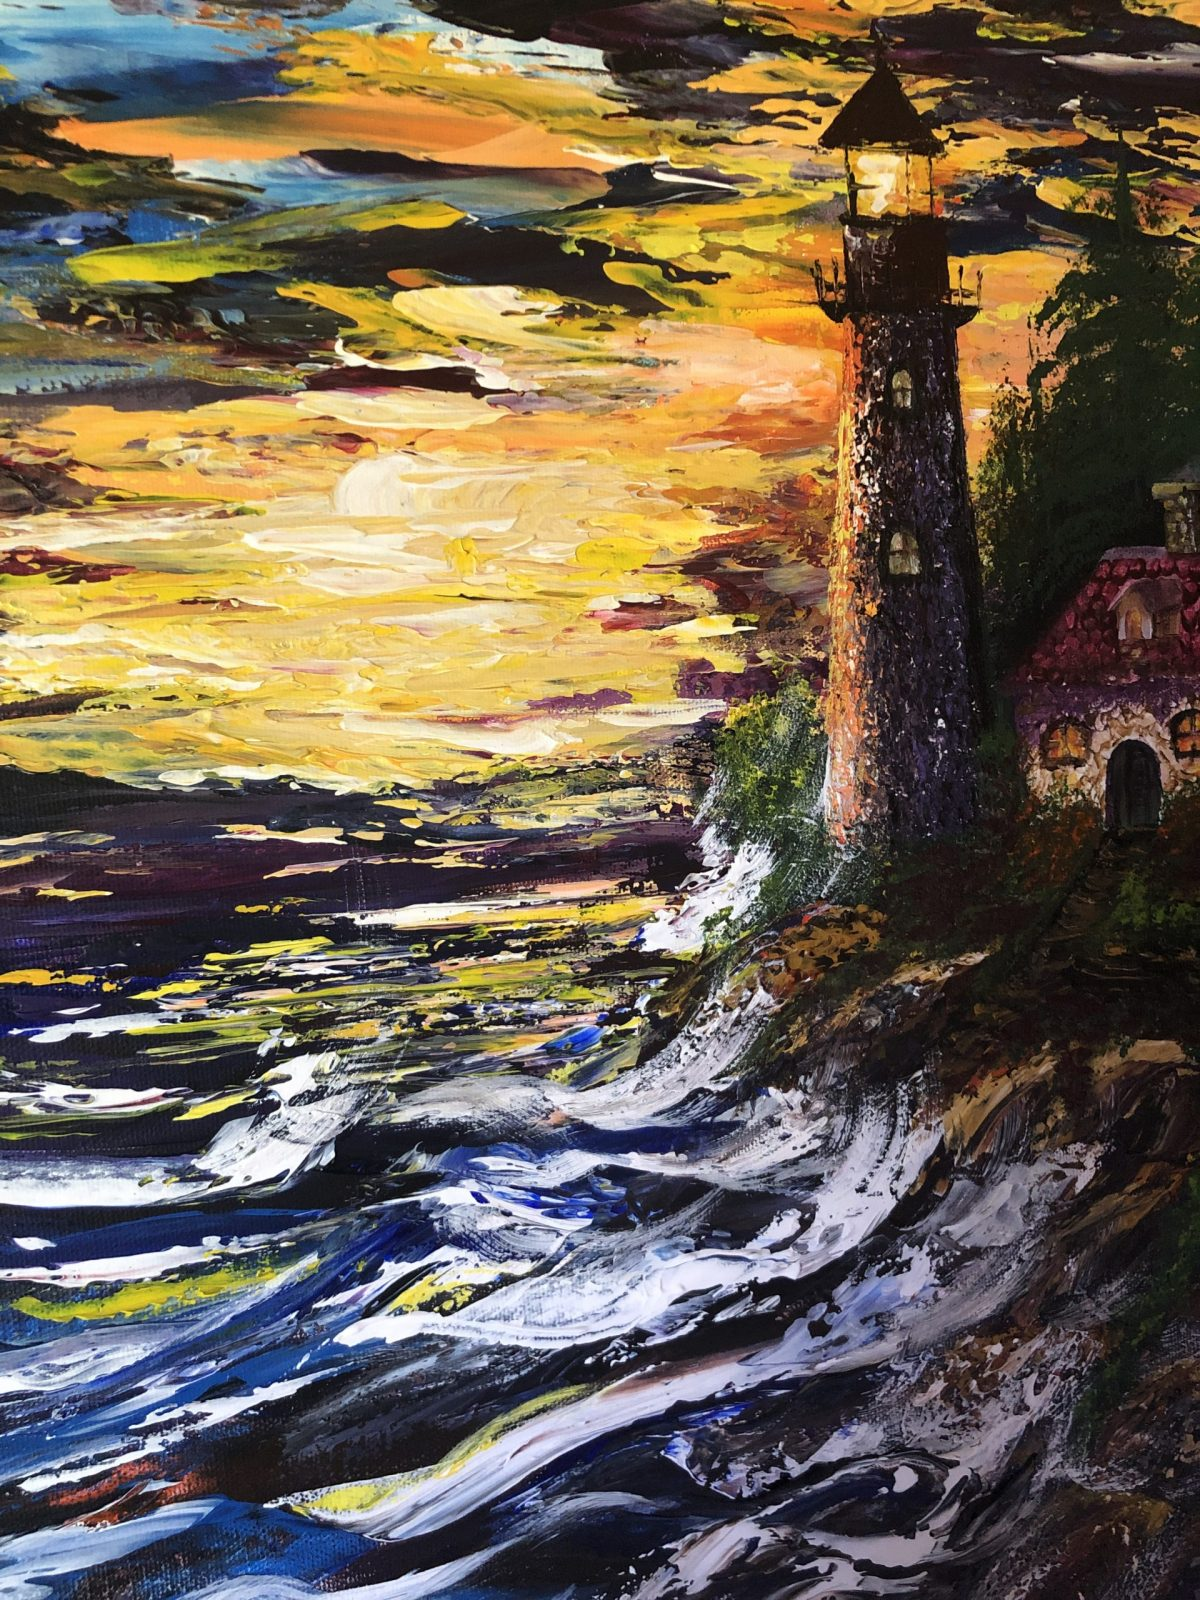 The Lighthouse under the waves, les vagues